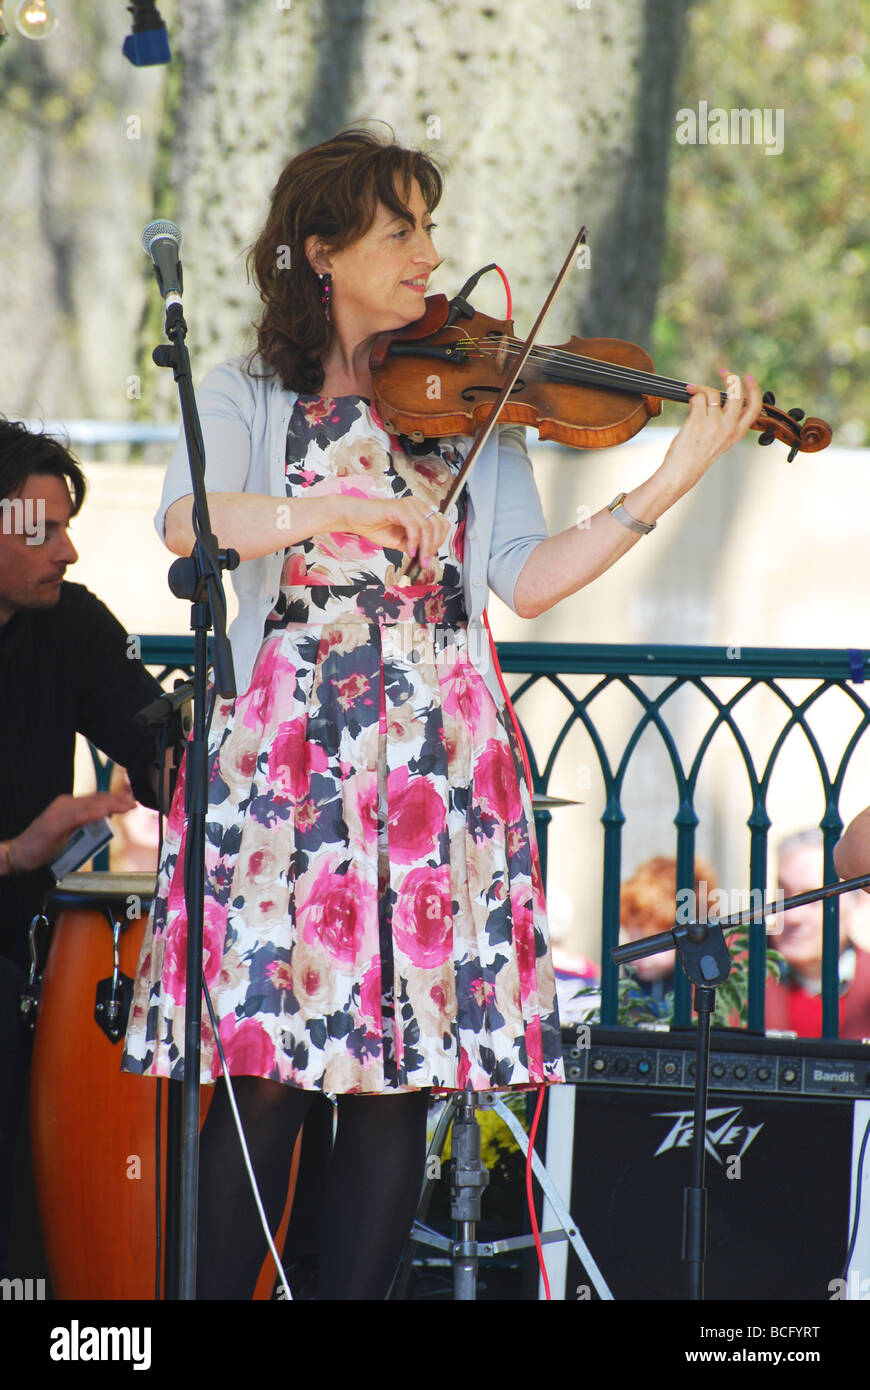 Jazz violinist at RHS show Cardiff bute park no 2729 - Stock Image